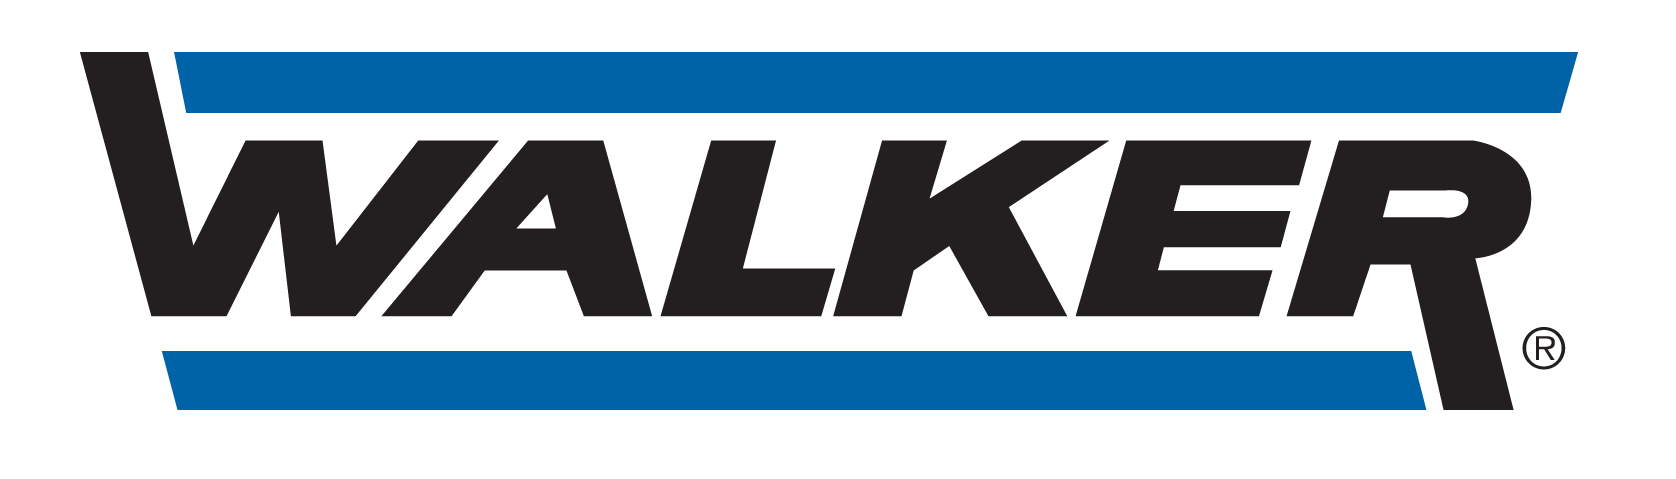 ZH AUTOS - logo Walker